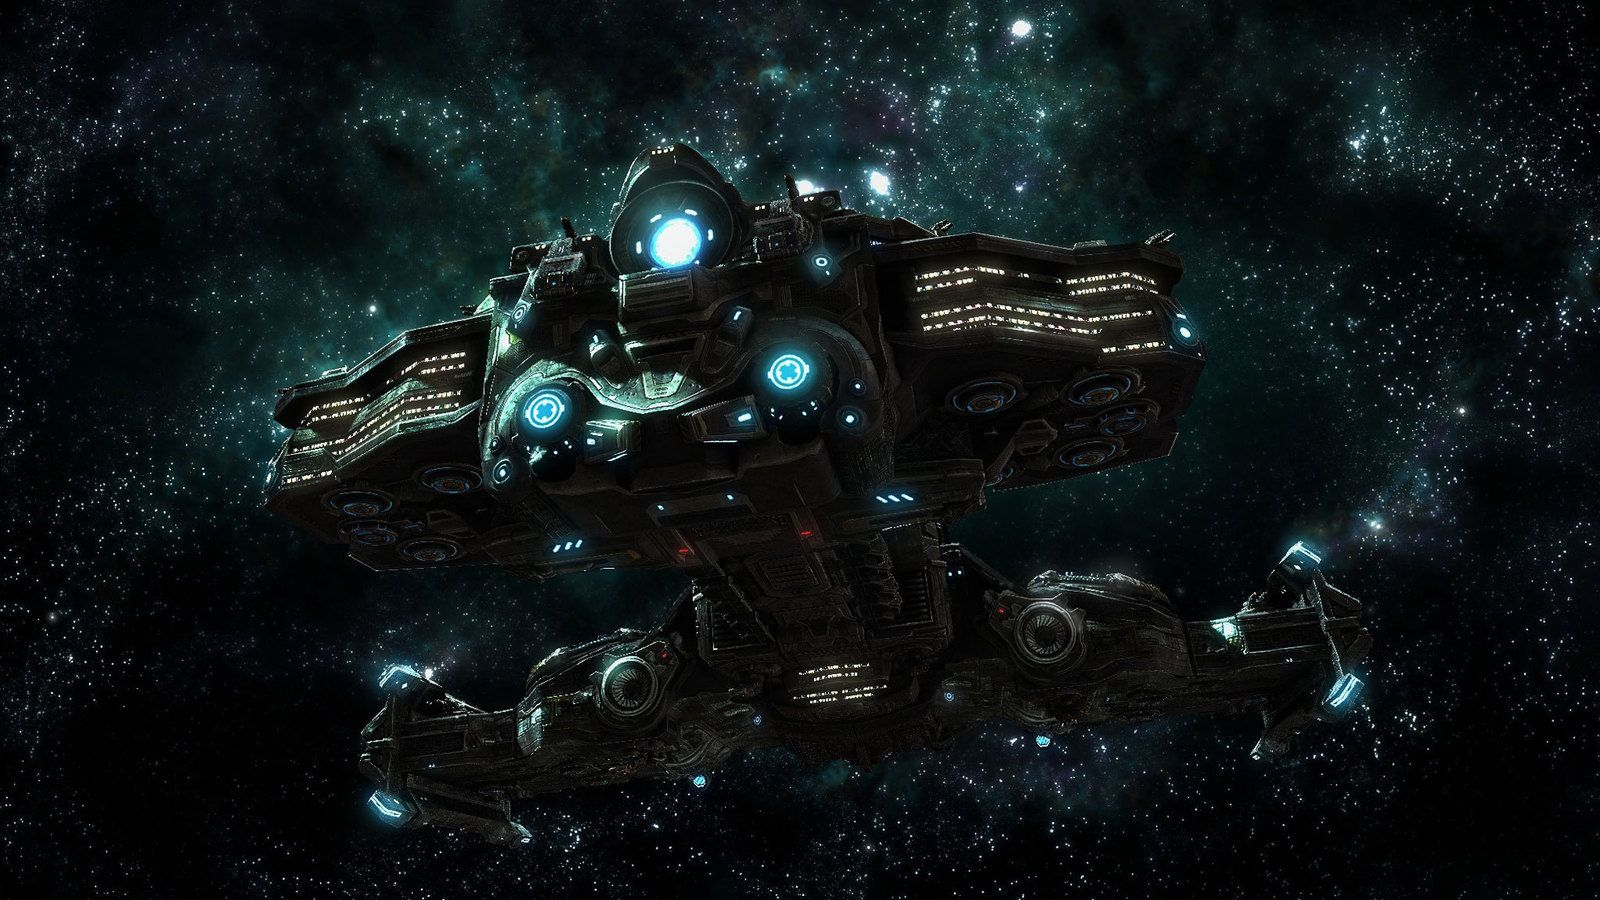 Black themed spaceship conceptual artwork and wallpapers 1 design - Black Themed Spaceship Conceptual Artwork And Wallpapers 1 Design Utopia Trend